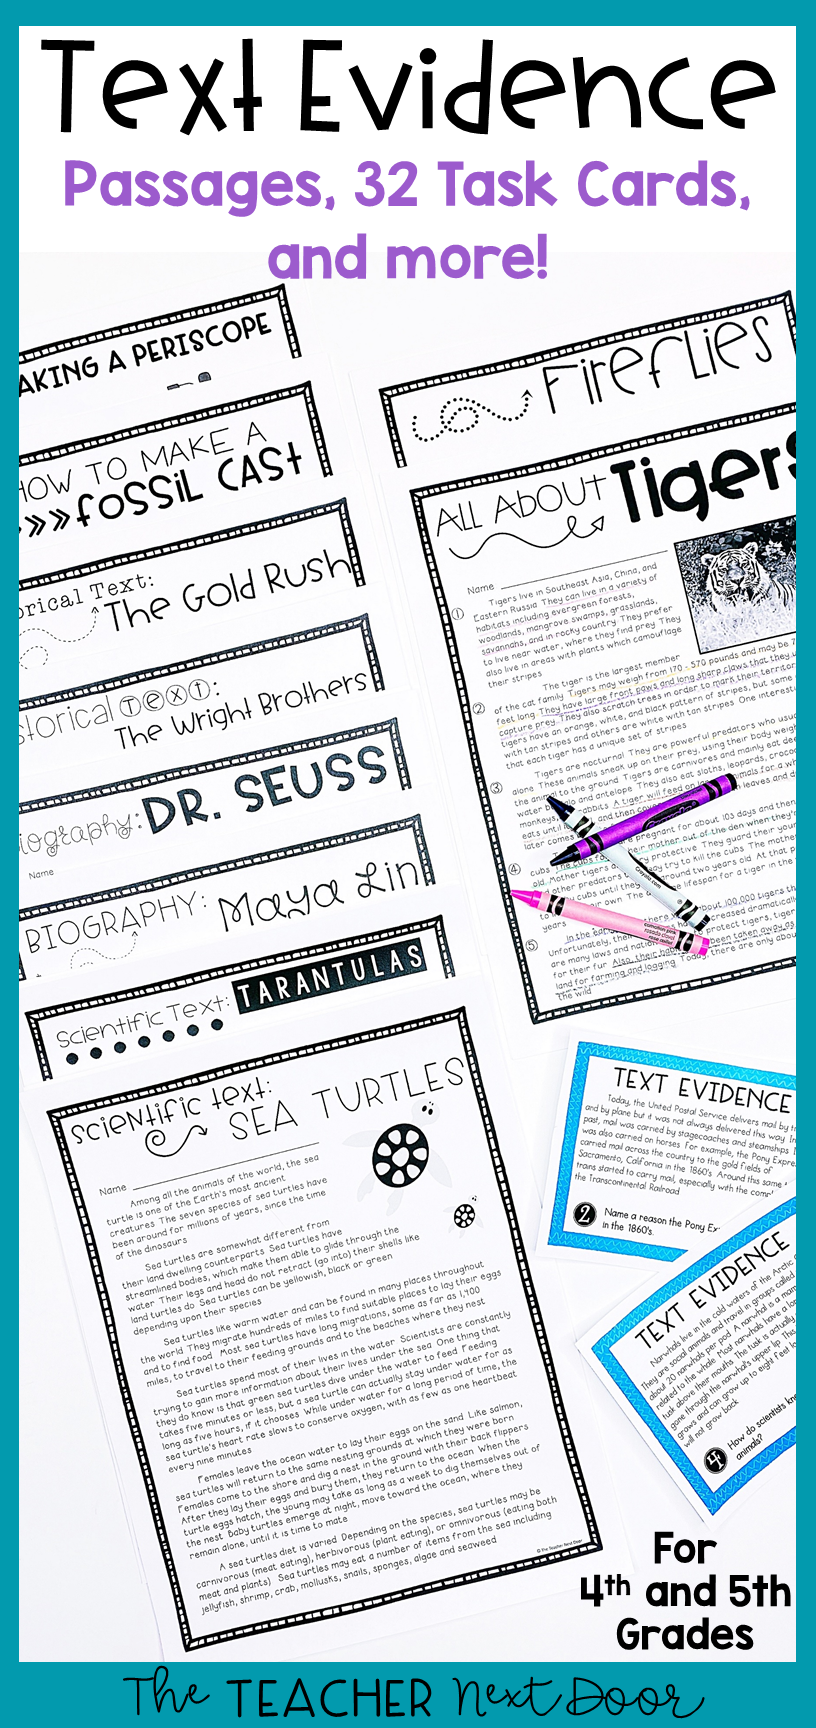 Text Evidence For 4th And 5th Grades Text Evidence Text Evidence Activities Informational Text [ 1728 x 816 Pixel ]